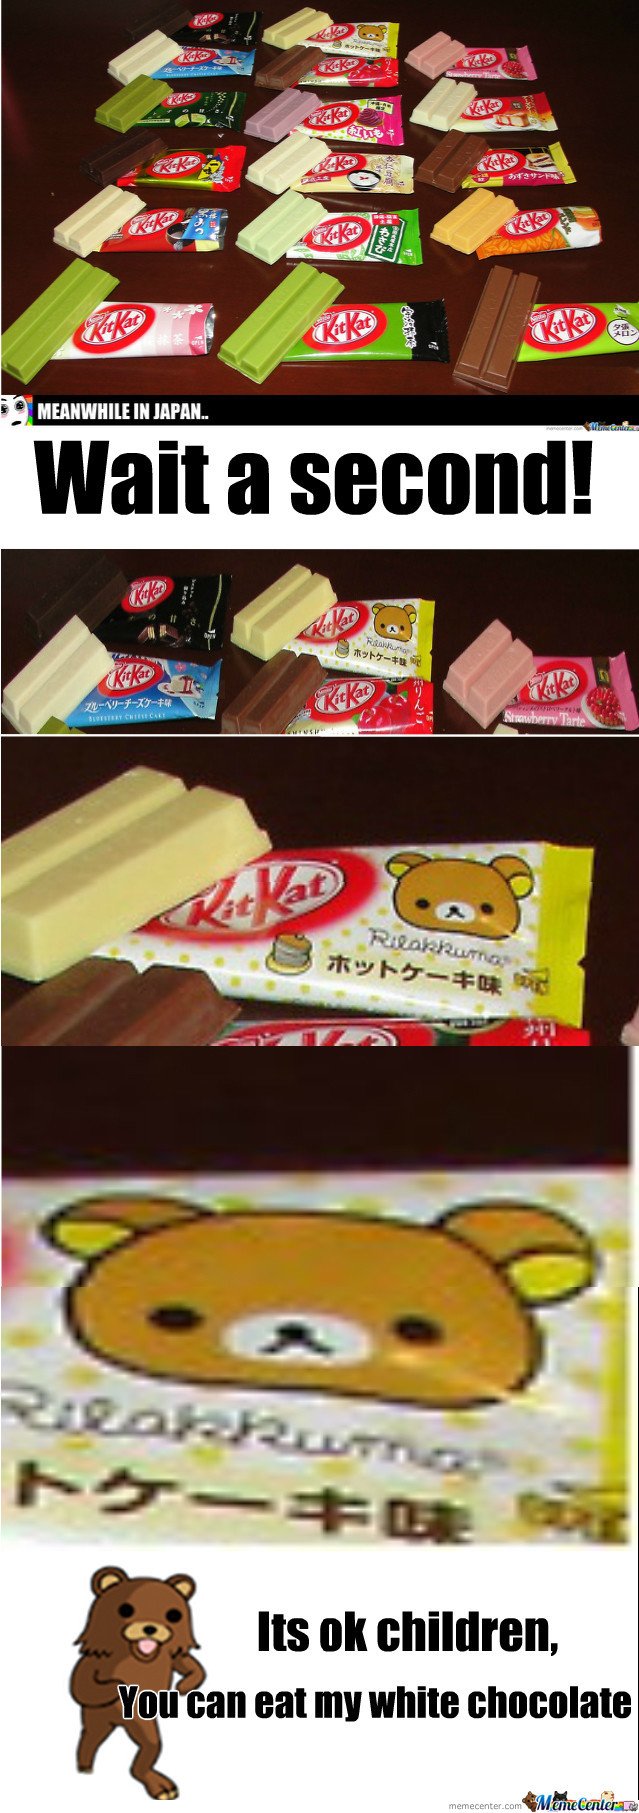 [RMX] Kitkat Types In Japan